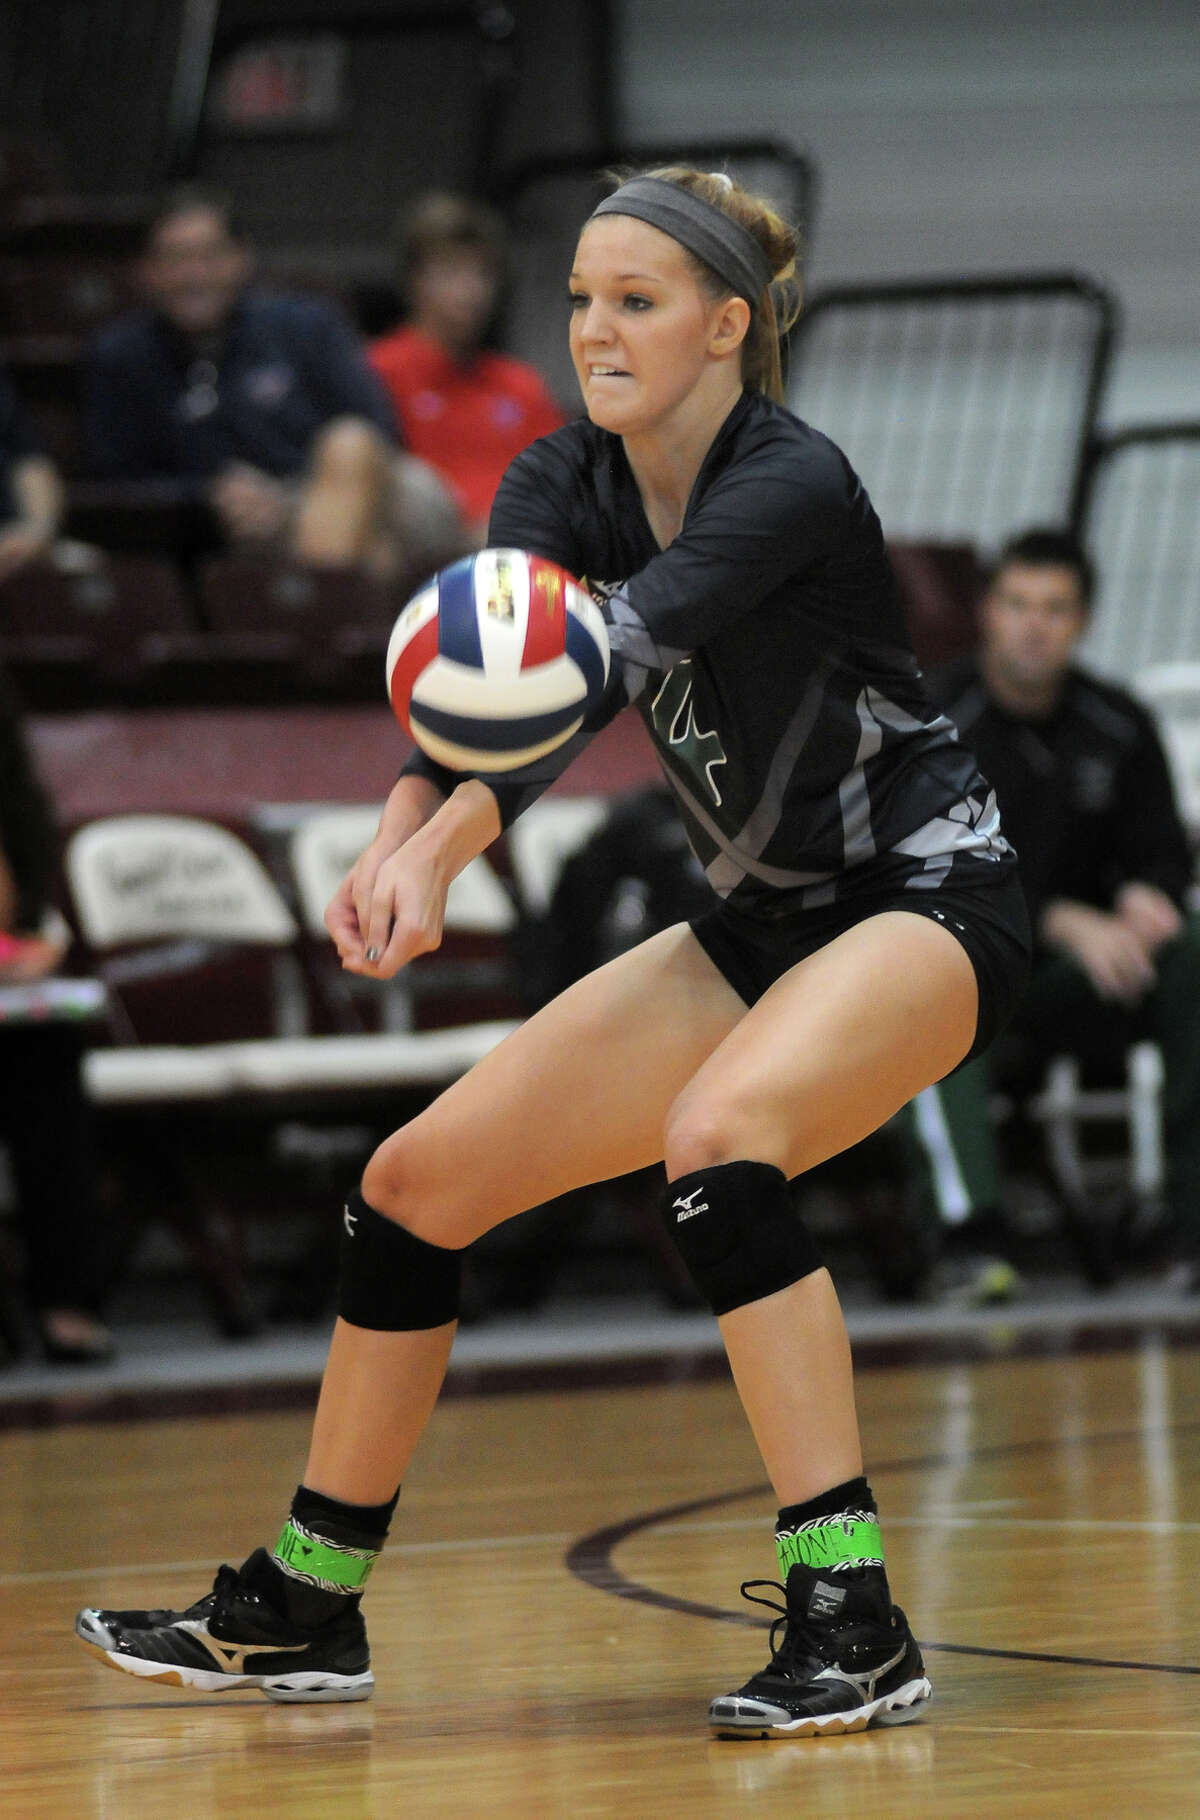 Clear Falls outside hitter Katie Bludau is averaging 3.0 kills per game for the Lady Knights.